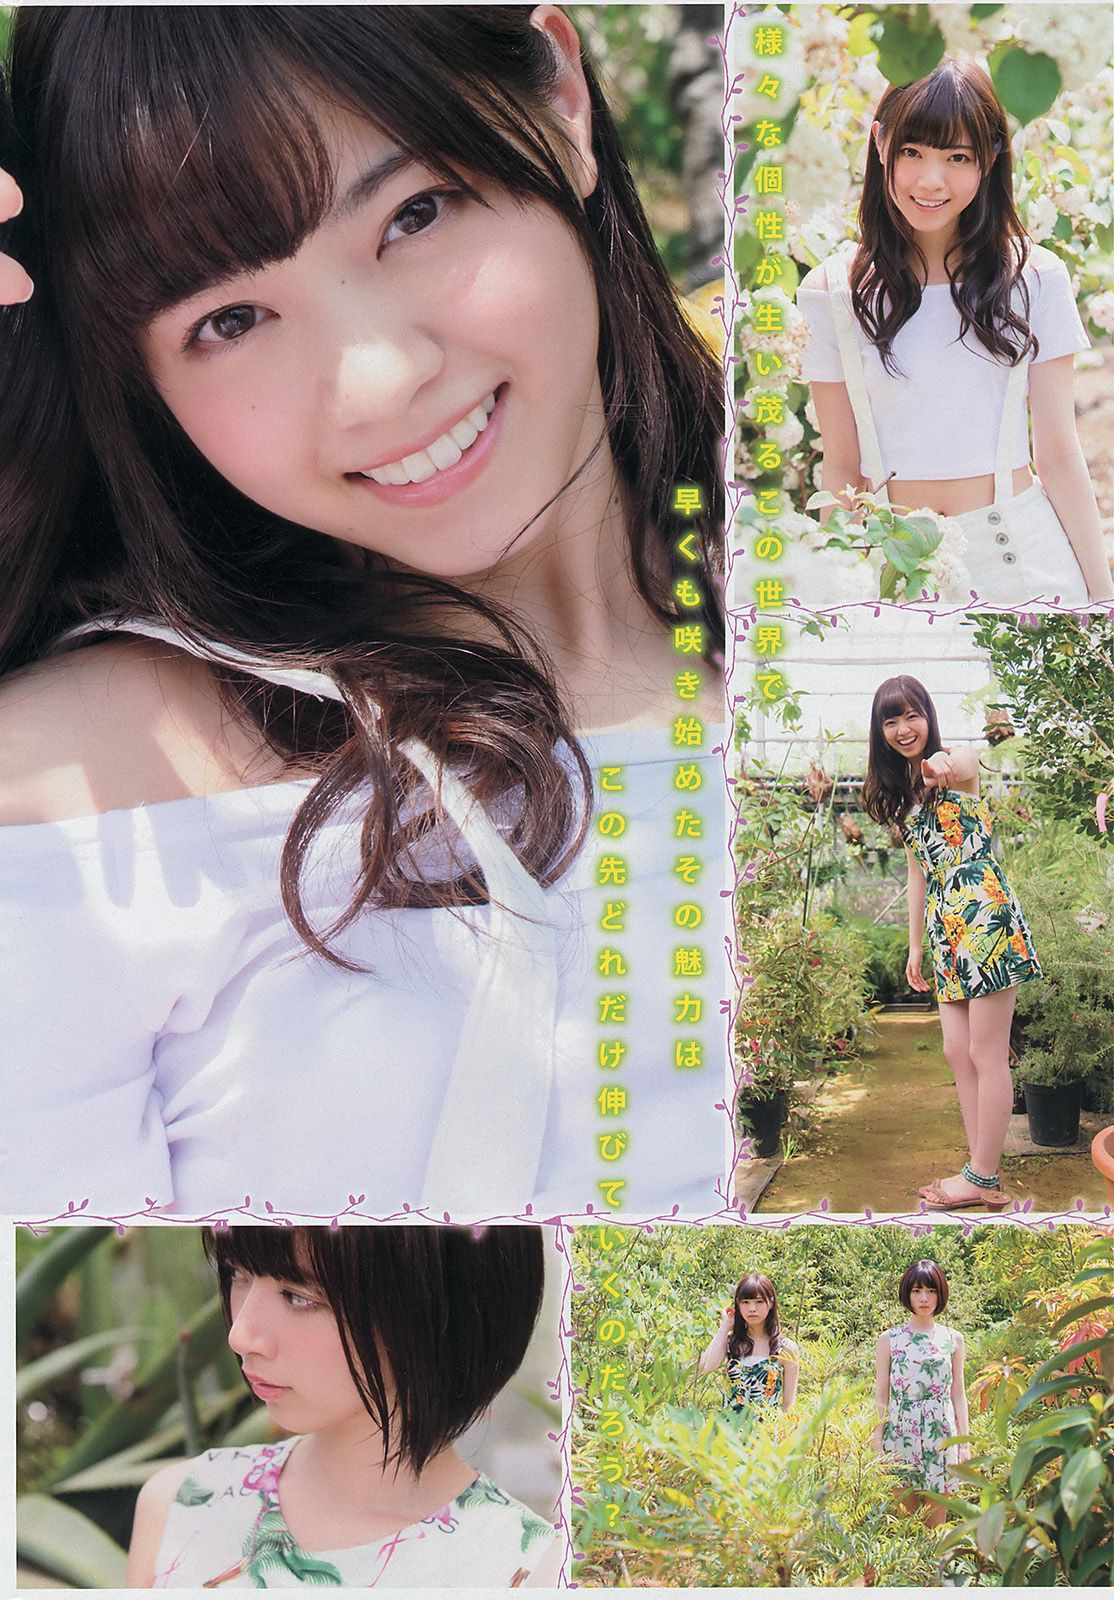 Young Magazine 2014 29 橋本奈々未 西野七瀬